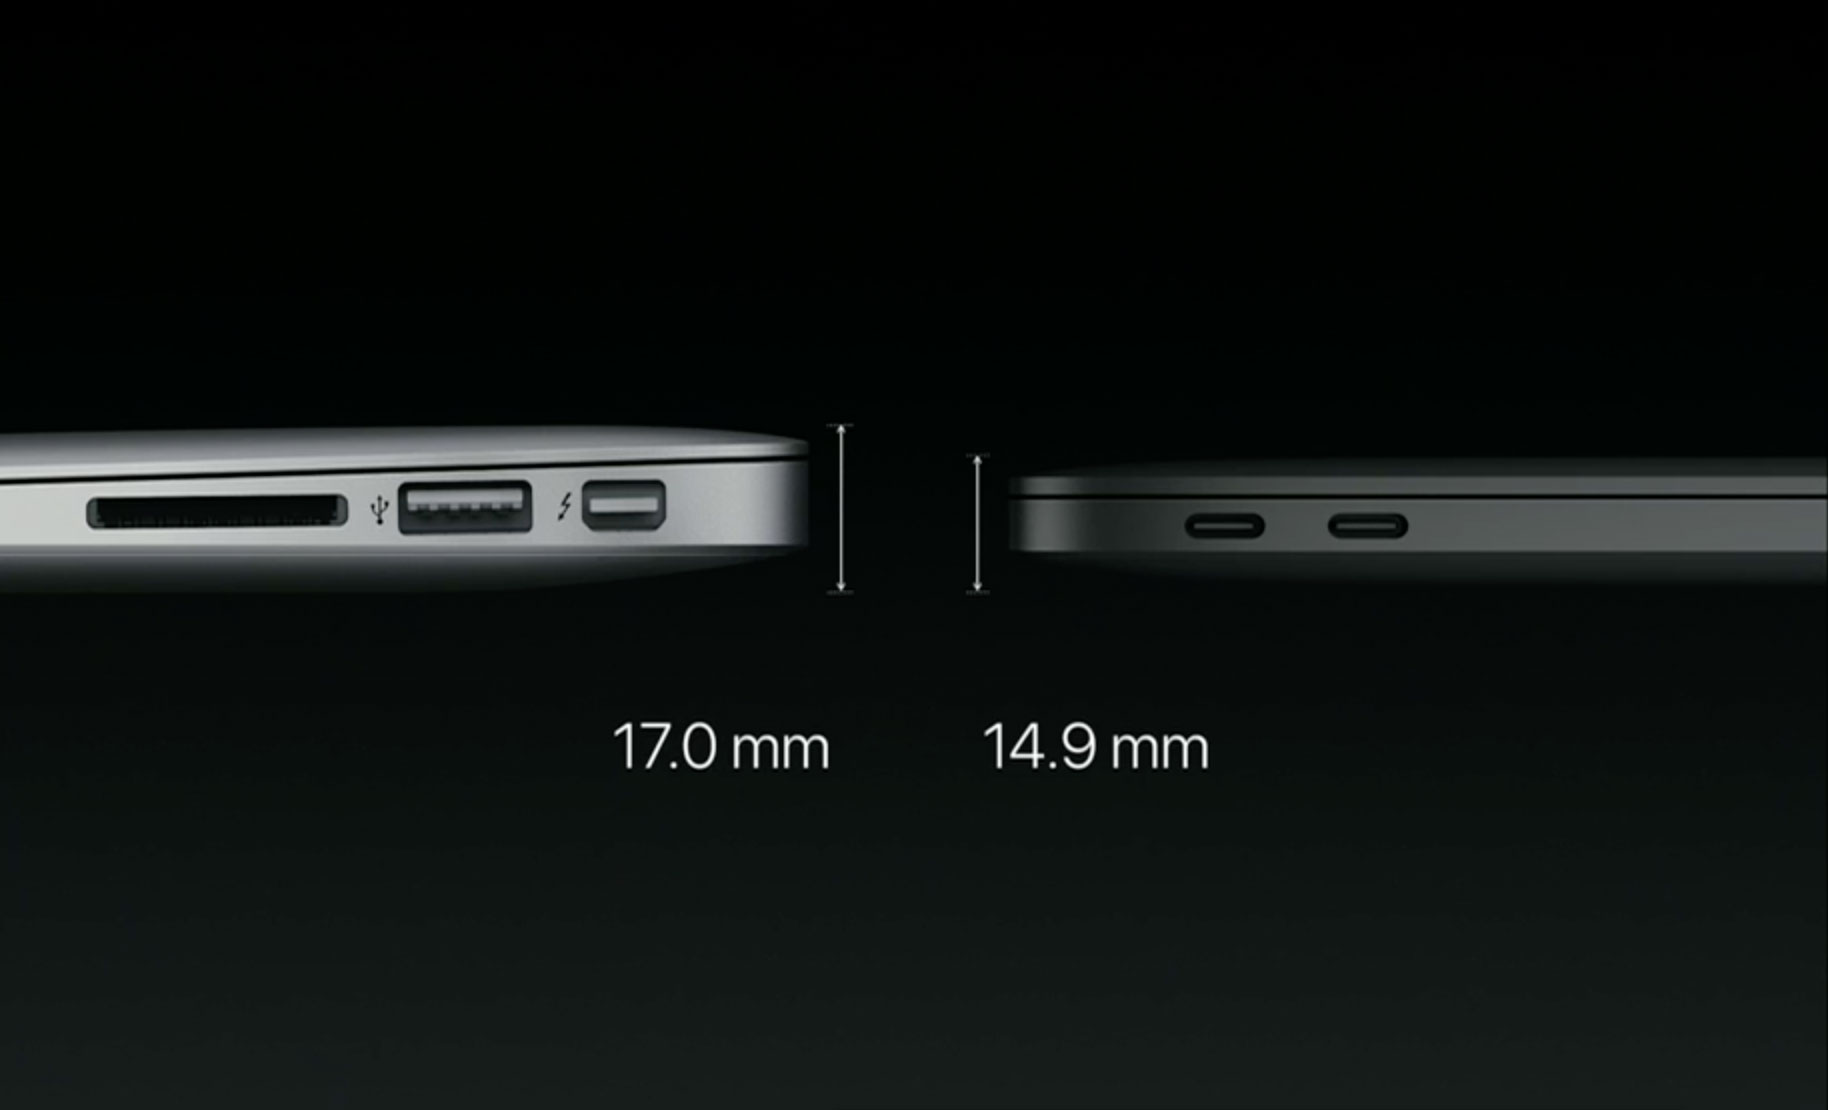 MacBook Air 13in on the left, 13in MacBook Pro on the right